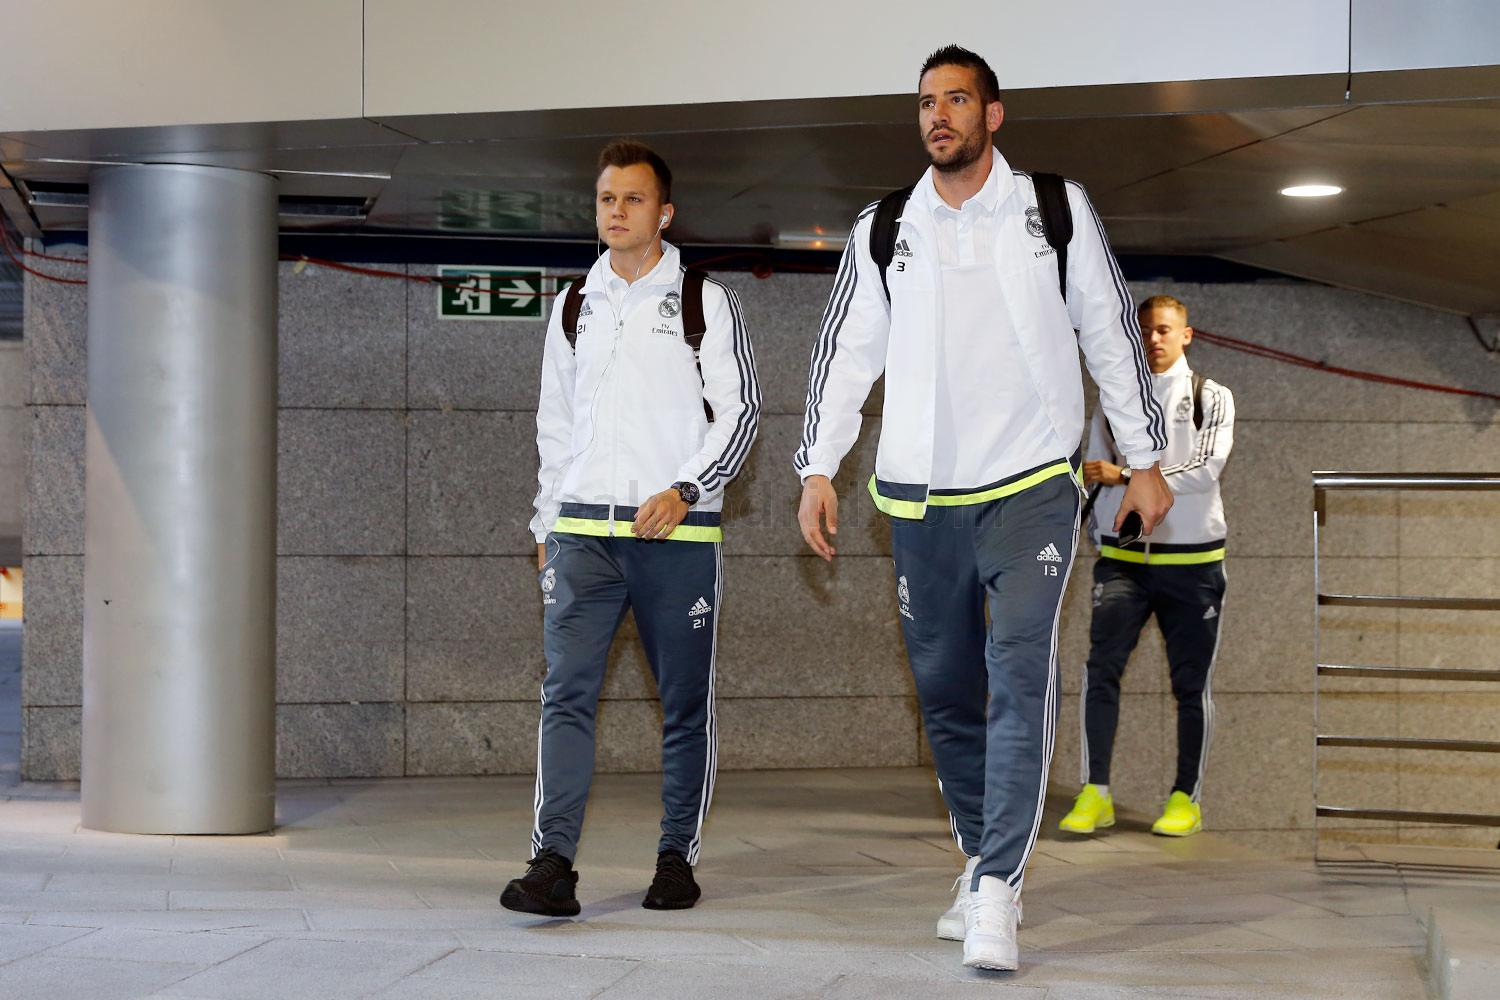 Real Madrid - Llegada al estadio - 17-10-2015